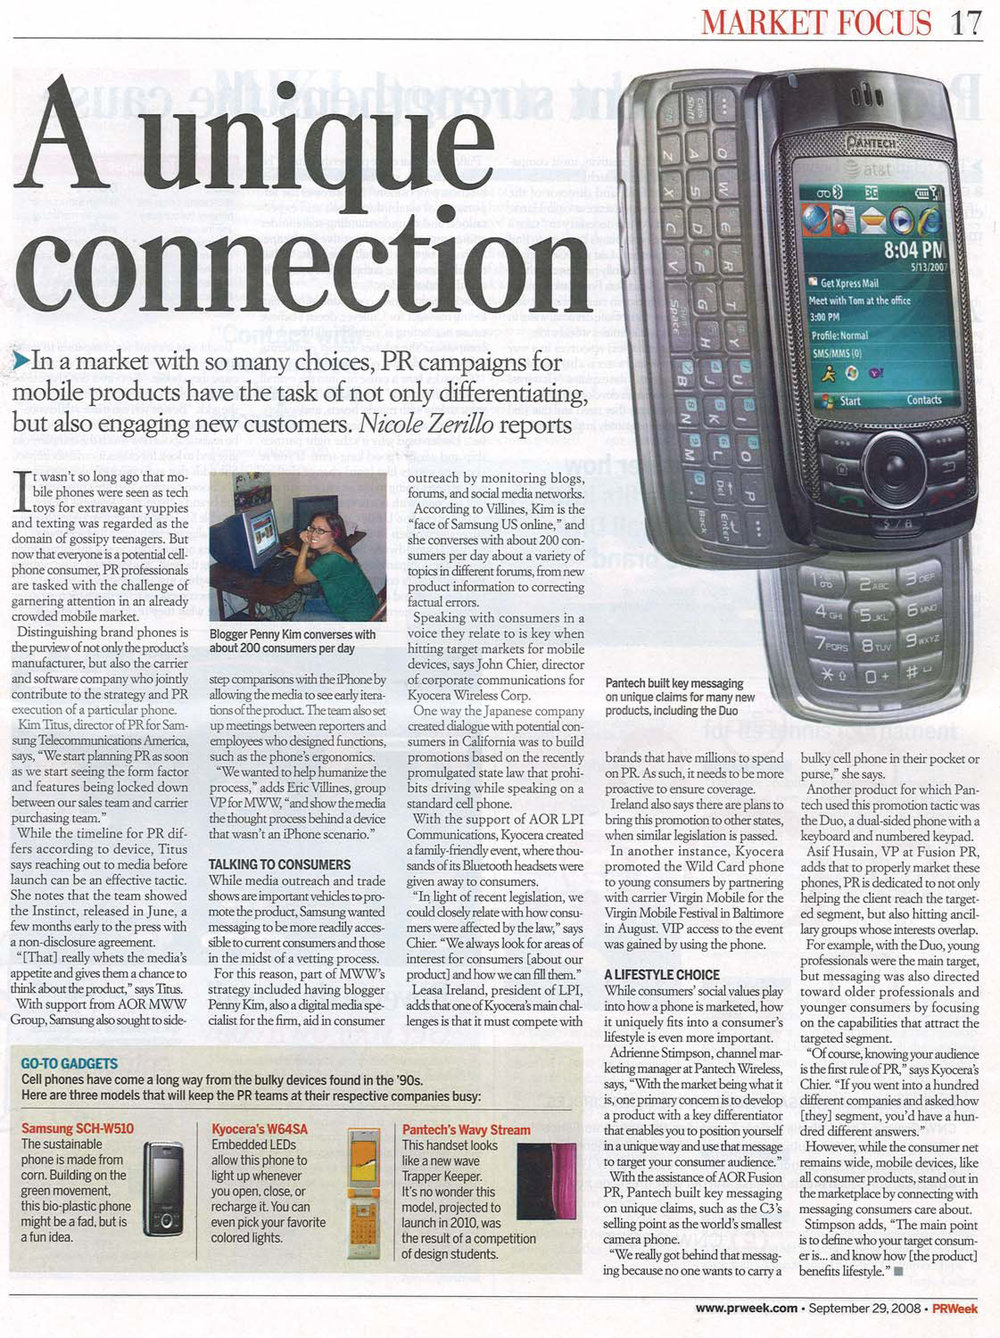 Featured in the Market Focus section of PRWeek - September 29, 2008